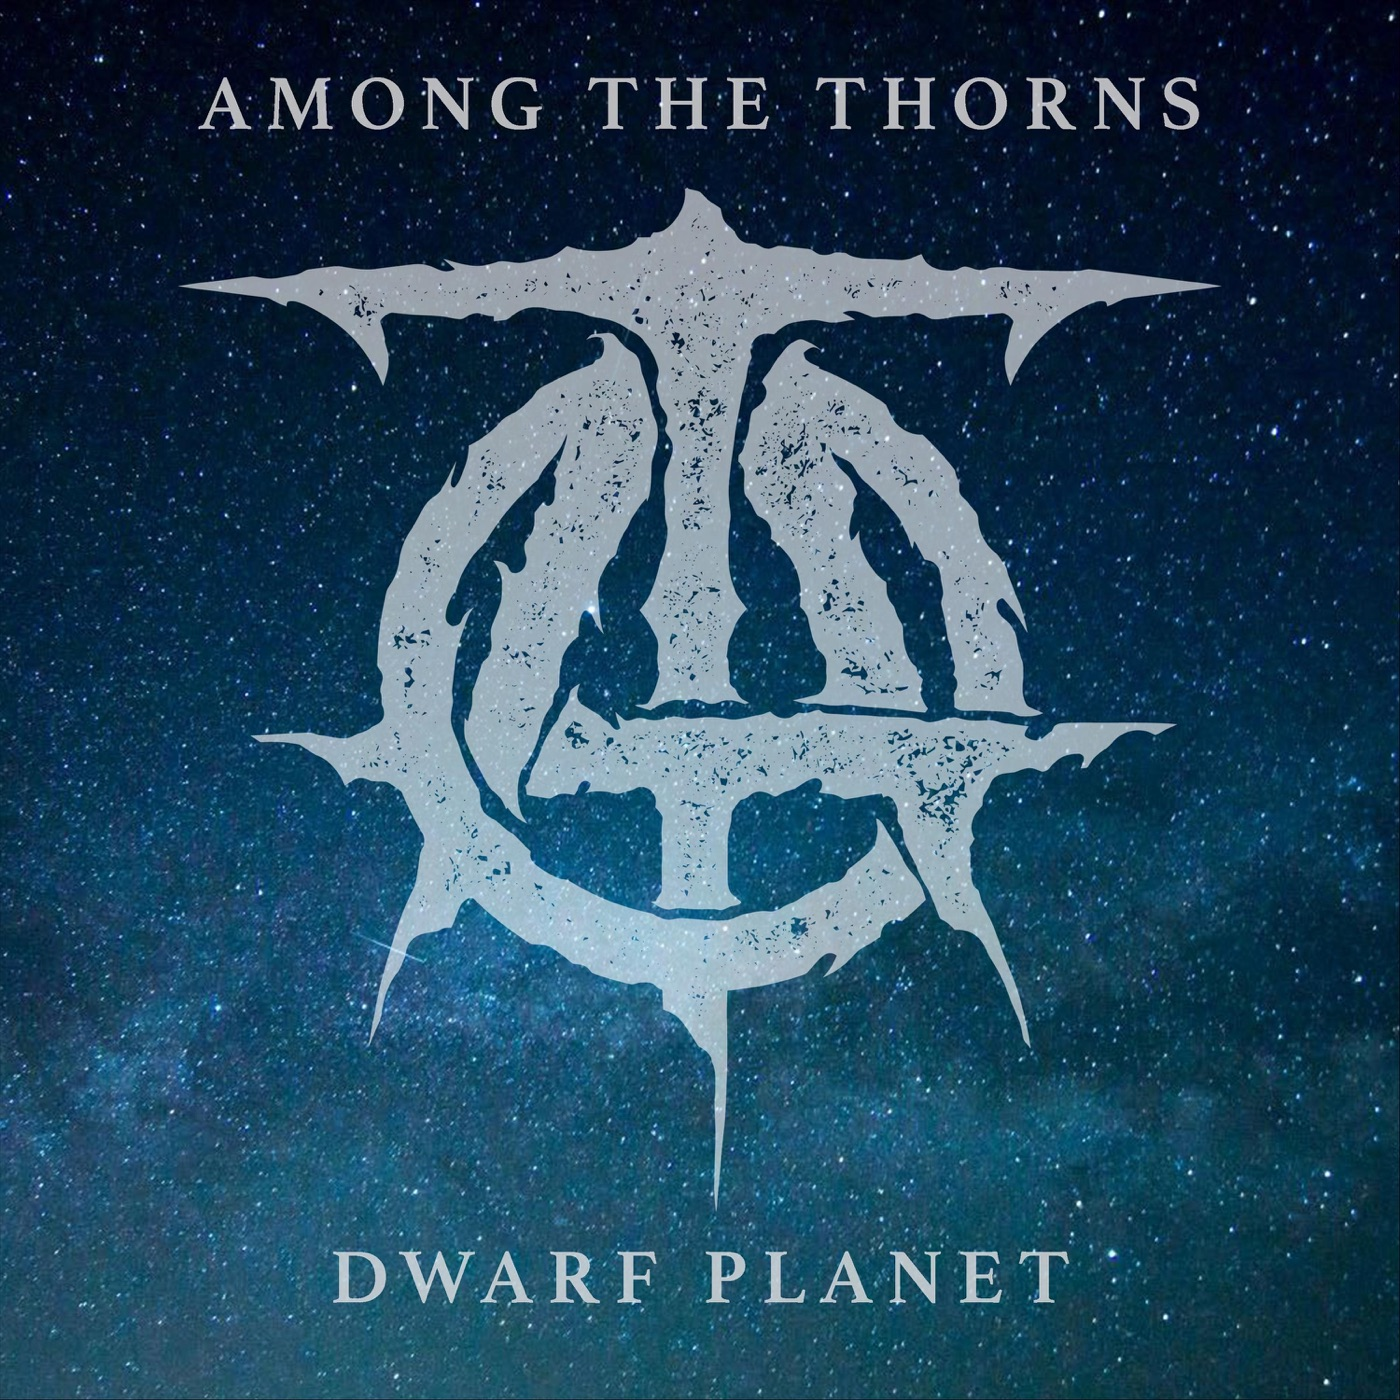 Among the Thorns - Dwarf Planet [EP] (2020)